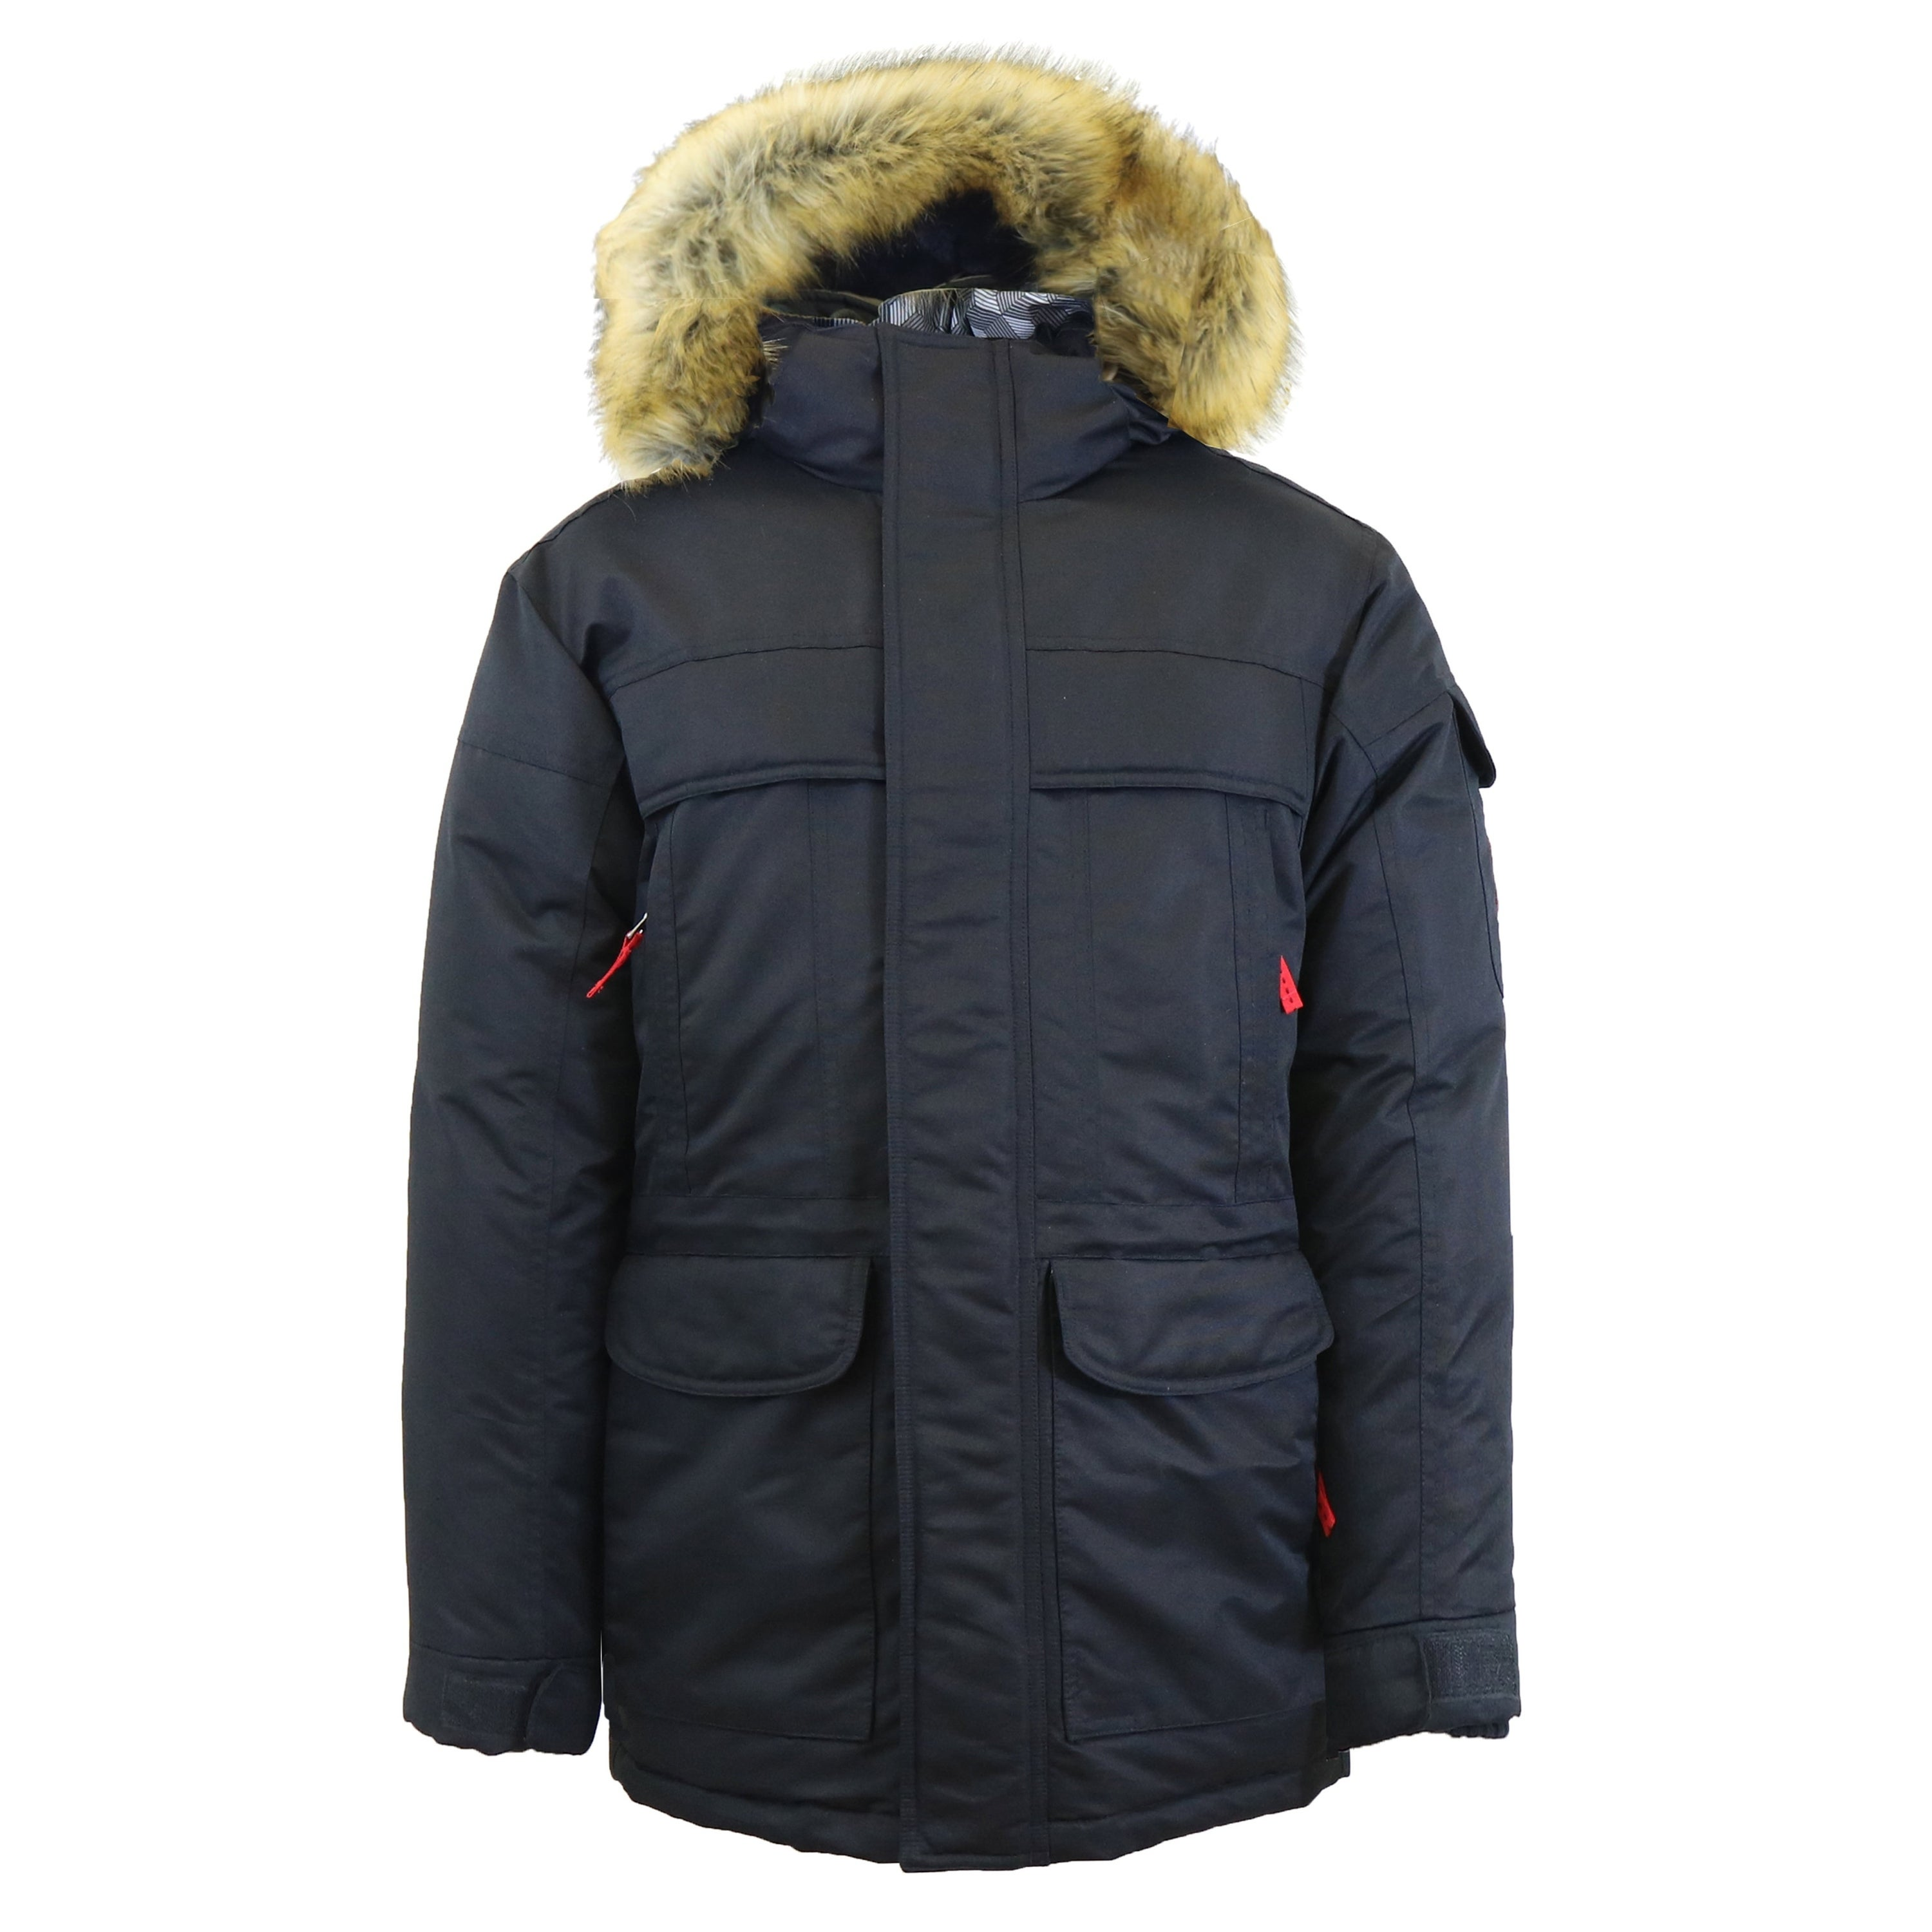 1bcde07d4 Spire By Galaxy Men's Heavyweight Parka Jacket With Detachable Hood